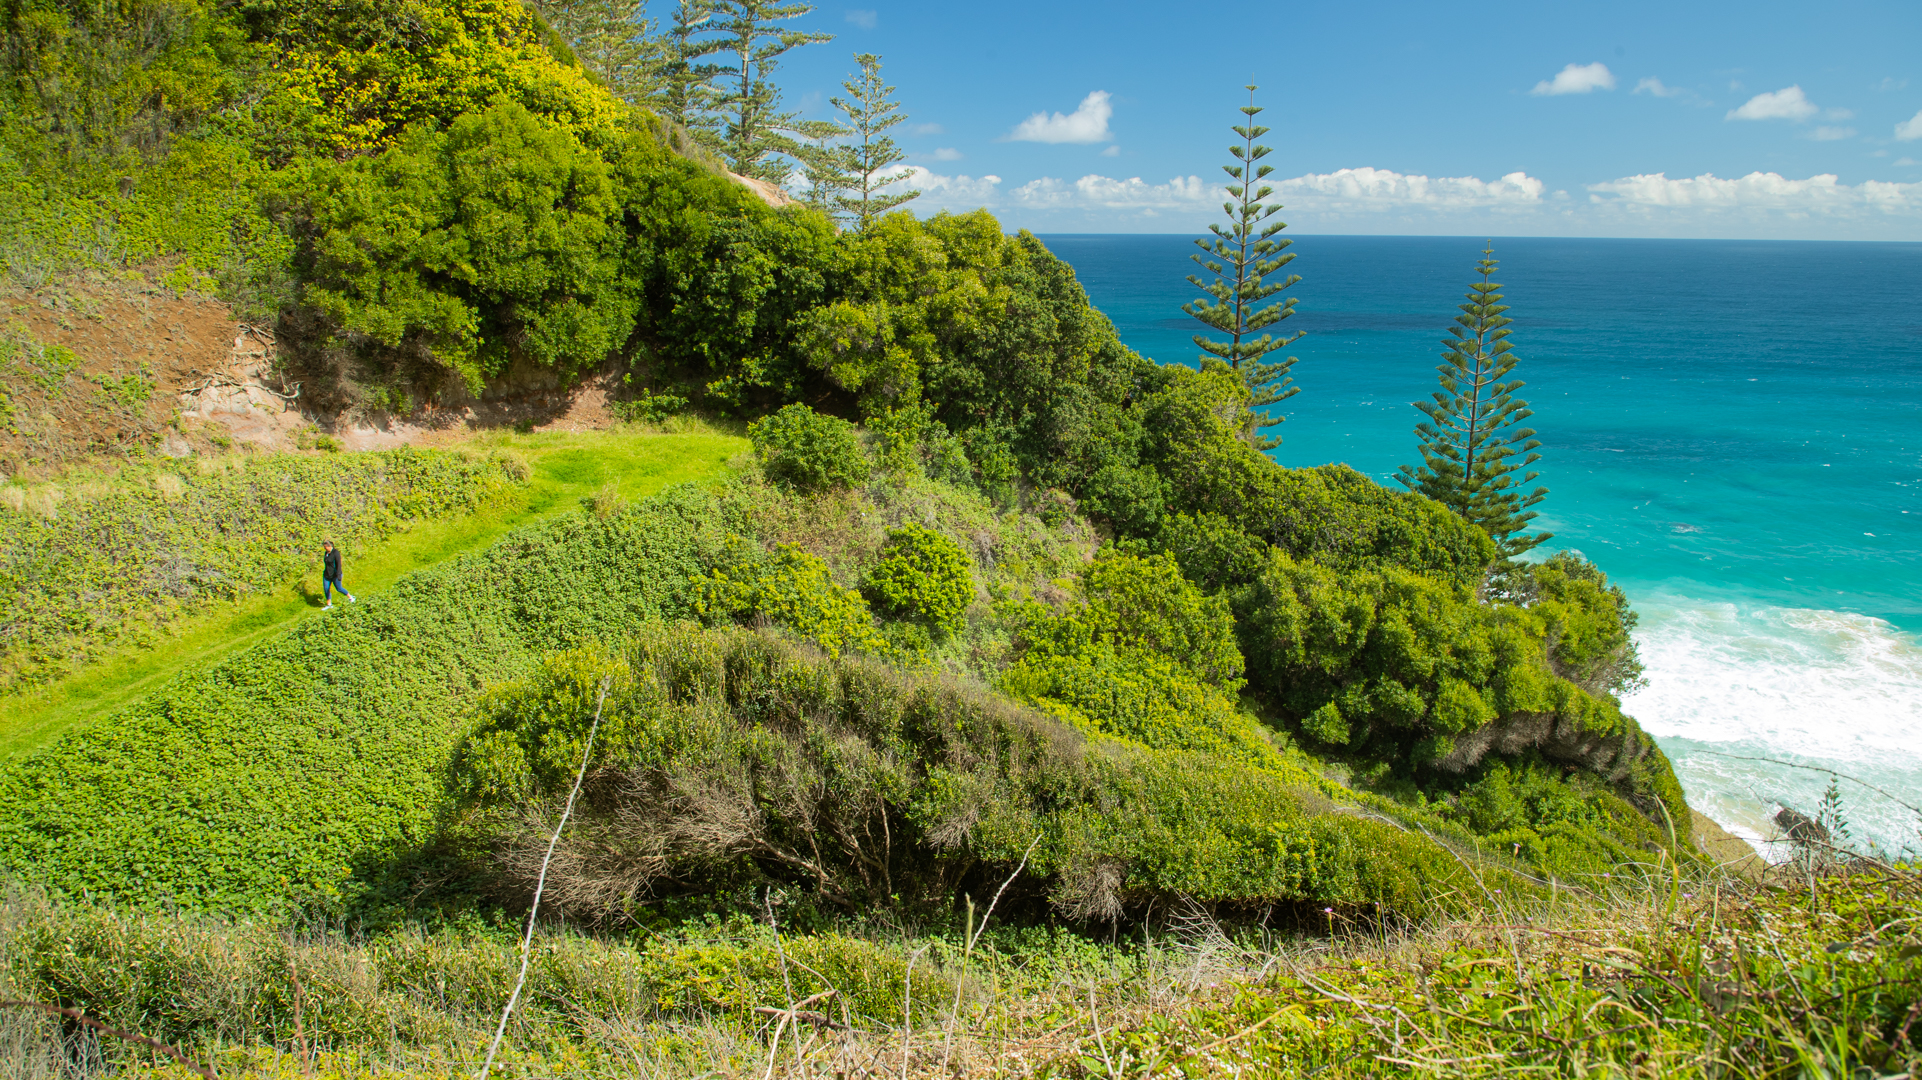 A small figure walking down a grassy slope with Norfolk Pines in the background and vast blue ocean